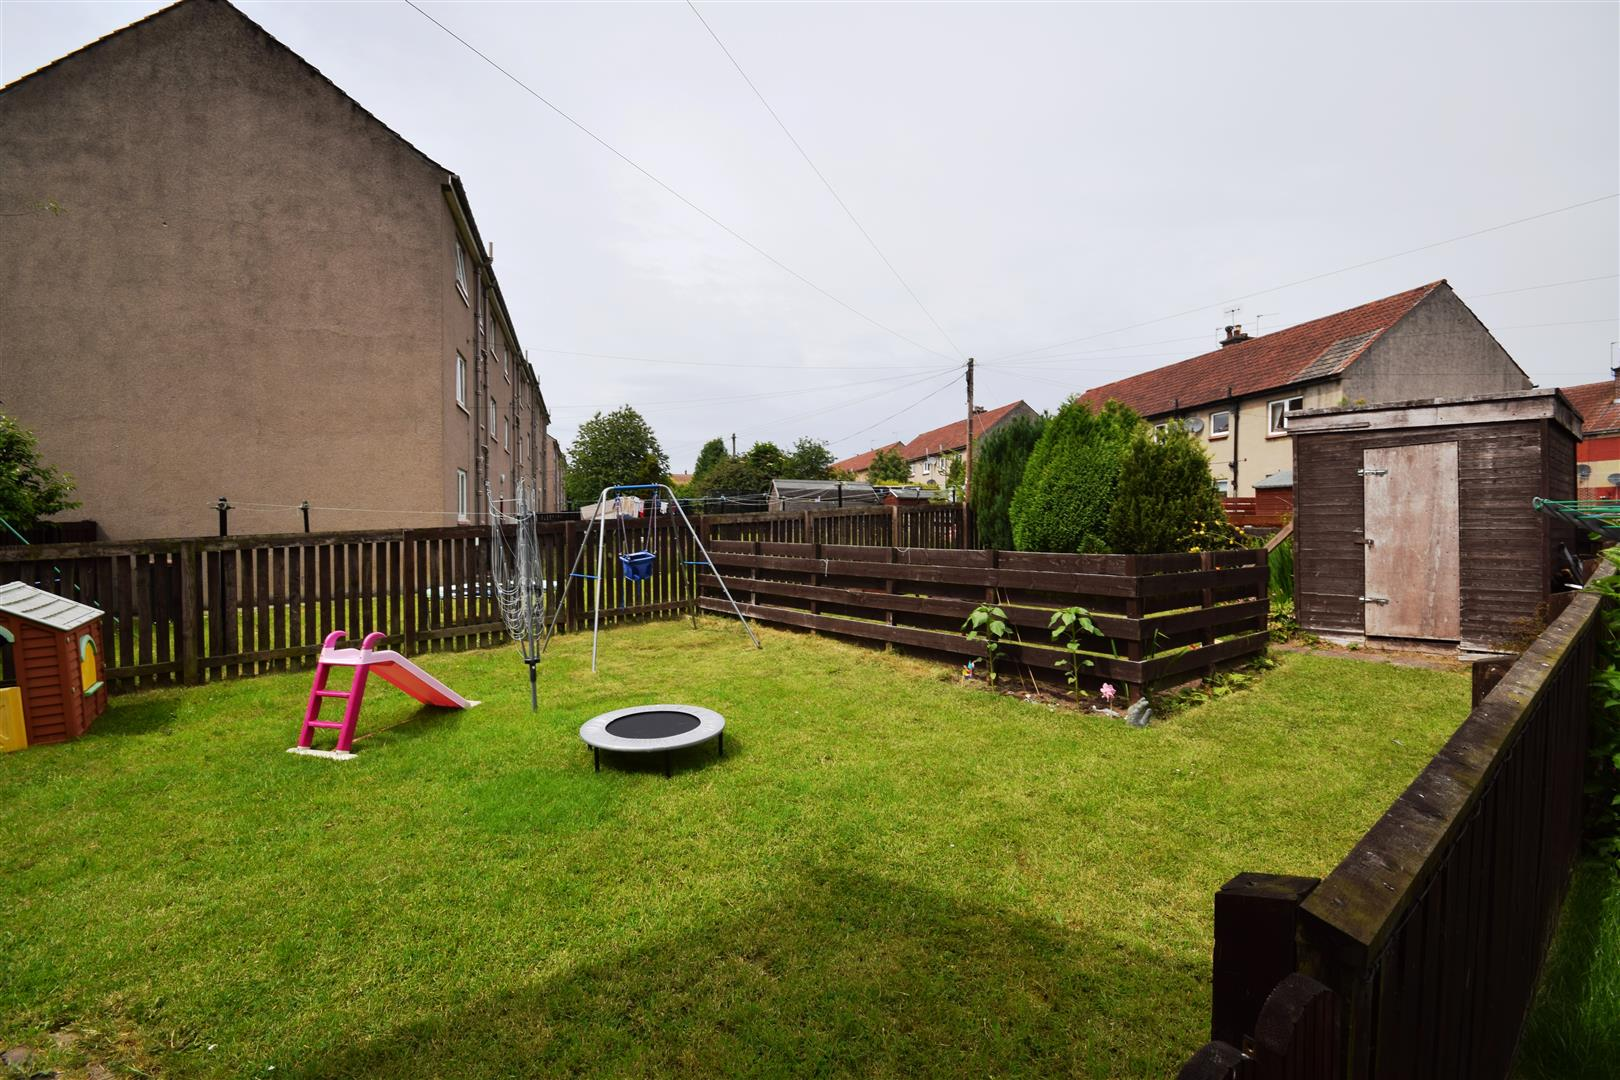 9D, Campsie Road, Perth, Perthshire, PH1 2HS, UK